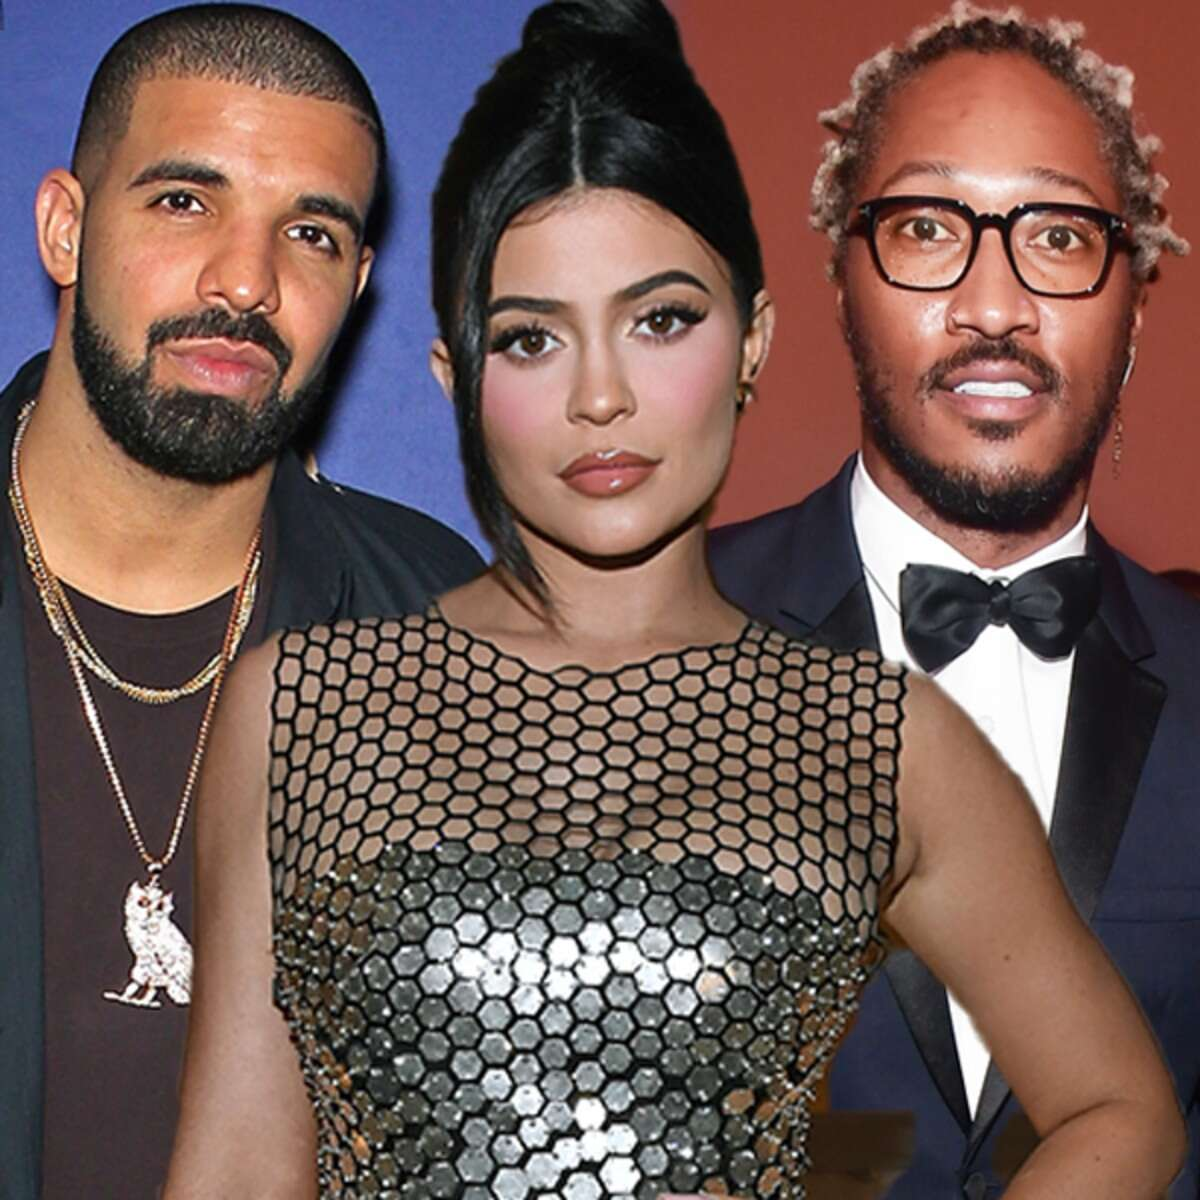 Drake Calls Kylie Jenner His 'Side Piece' In Leaked Song With Rapper Future